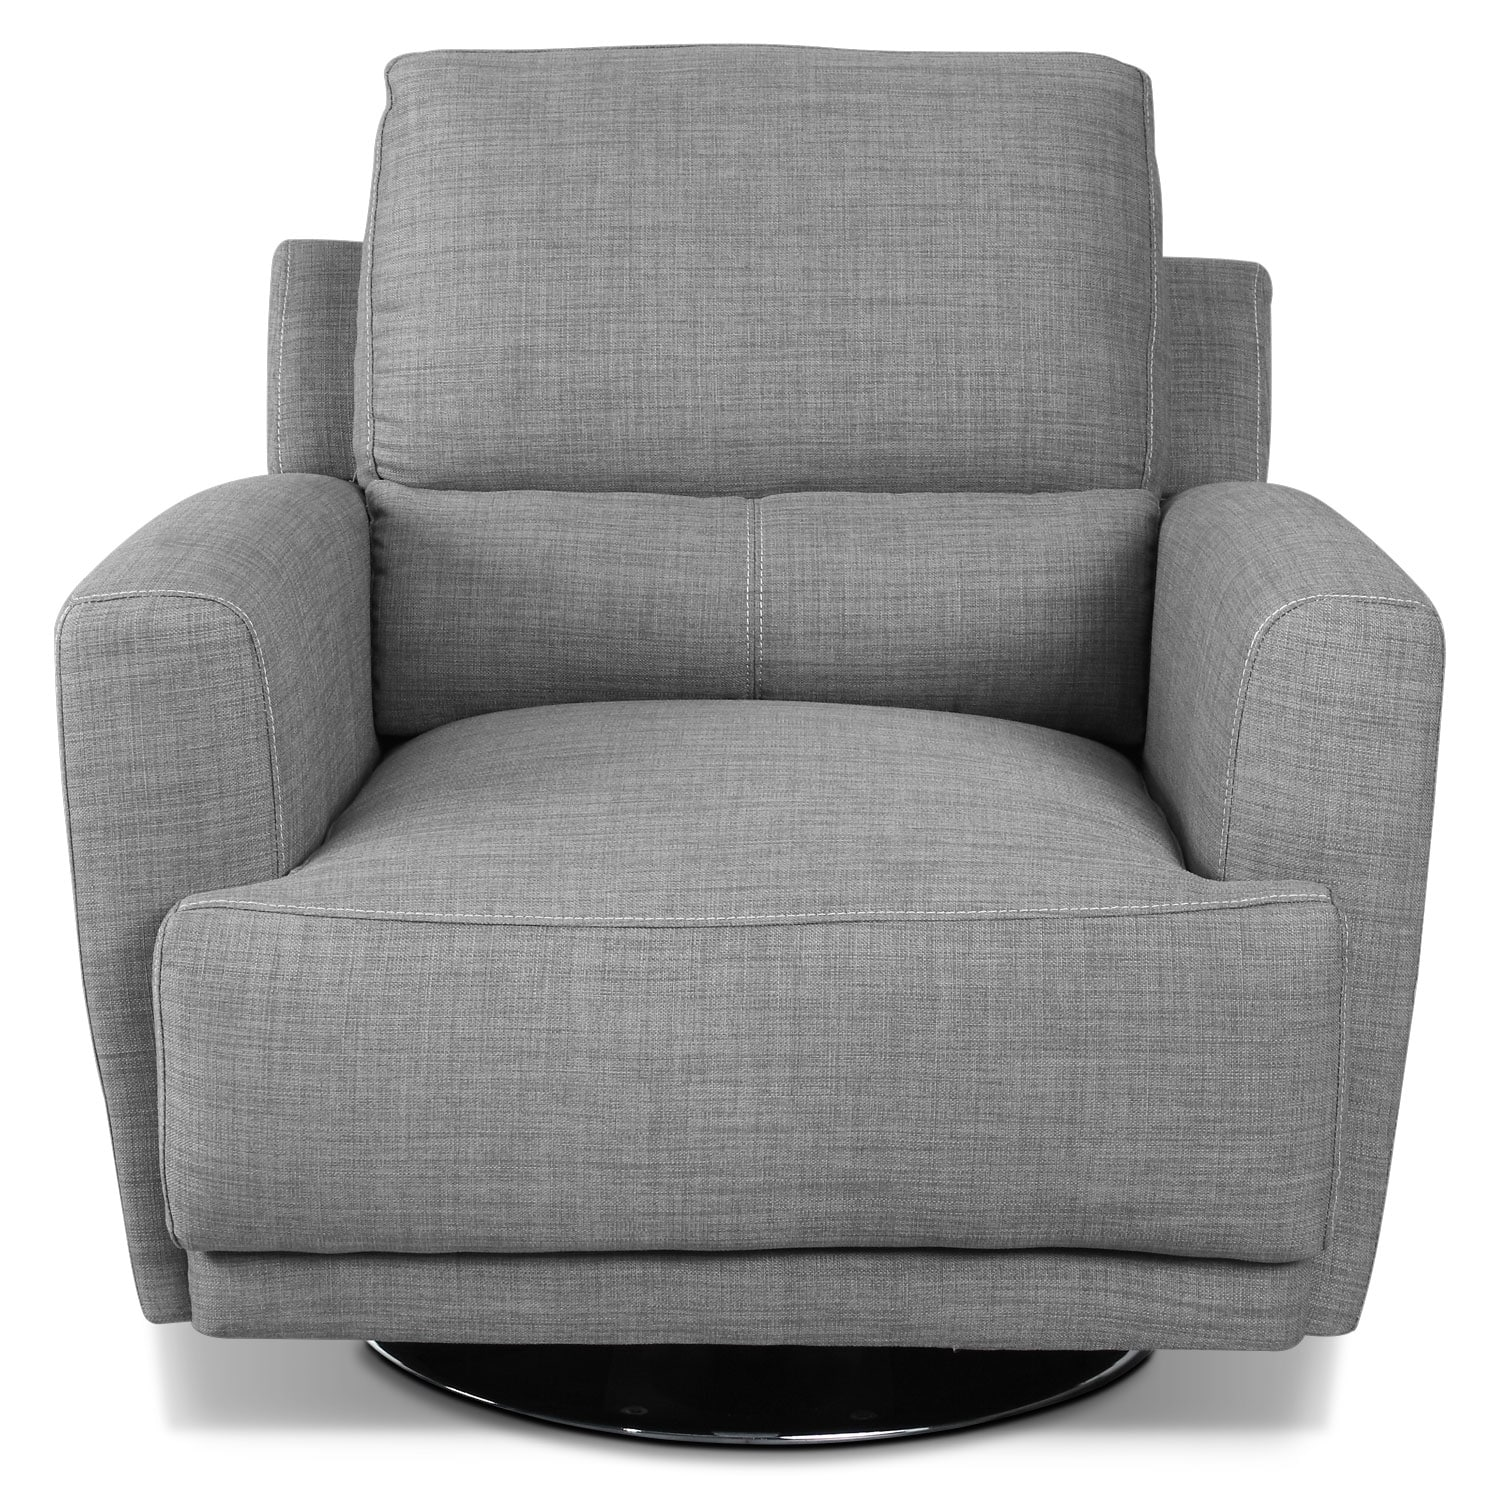 Living Room Furniture - Emilee Fabric Swivel Chair - Ash